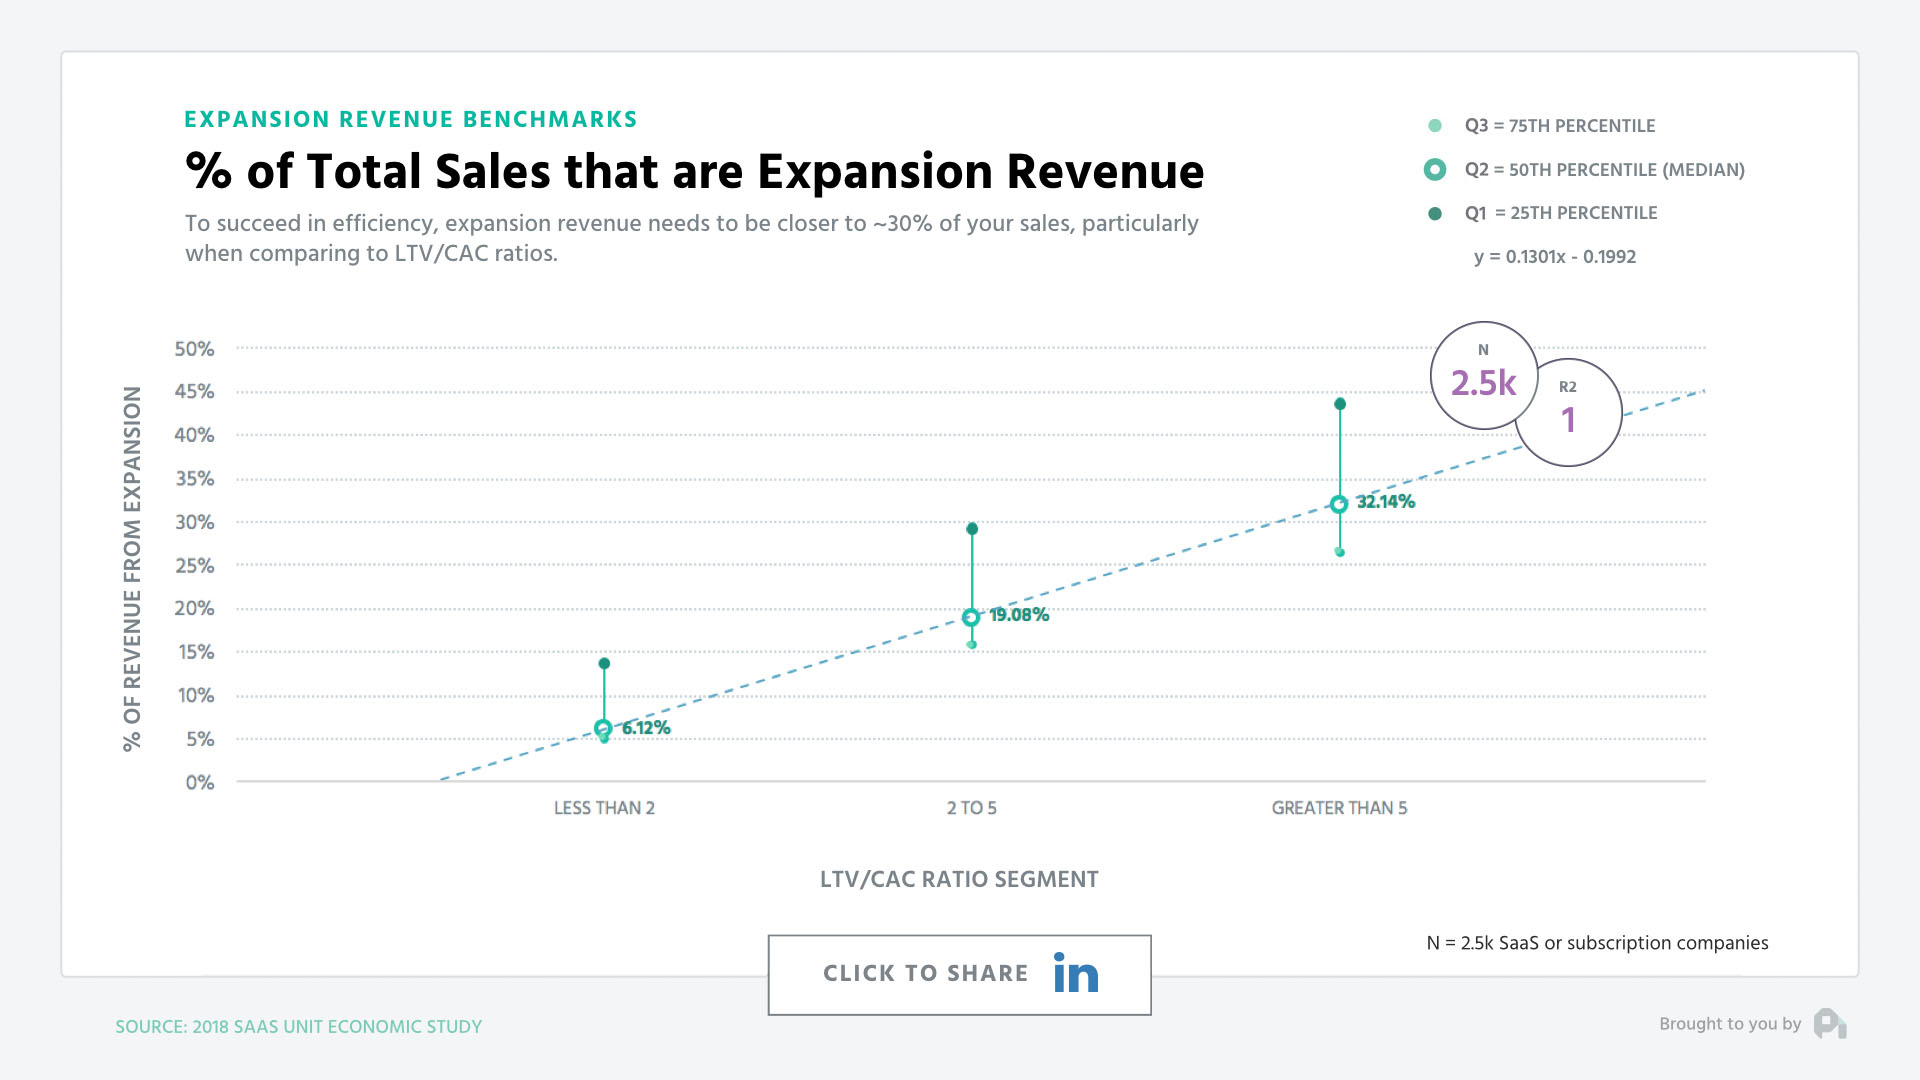 % of Total Sales that are Expansion Revenue